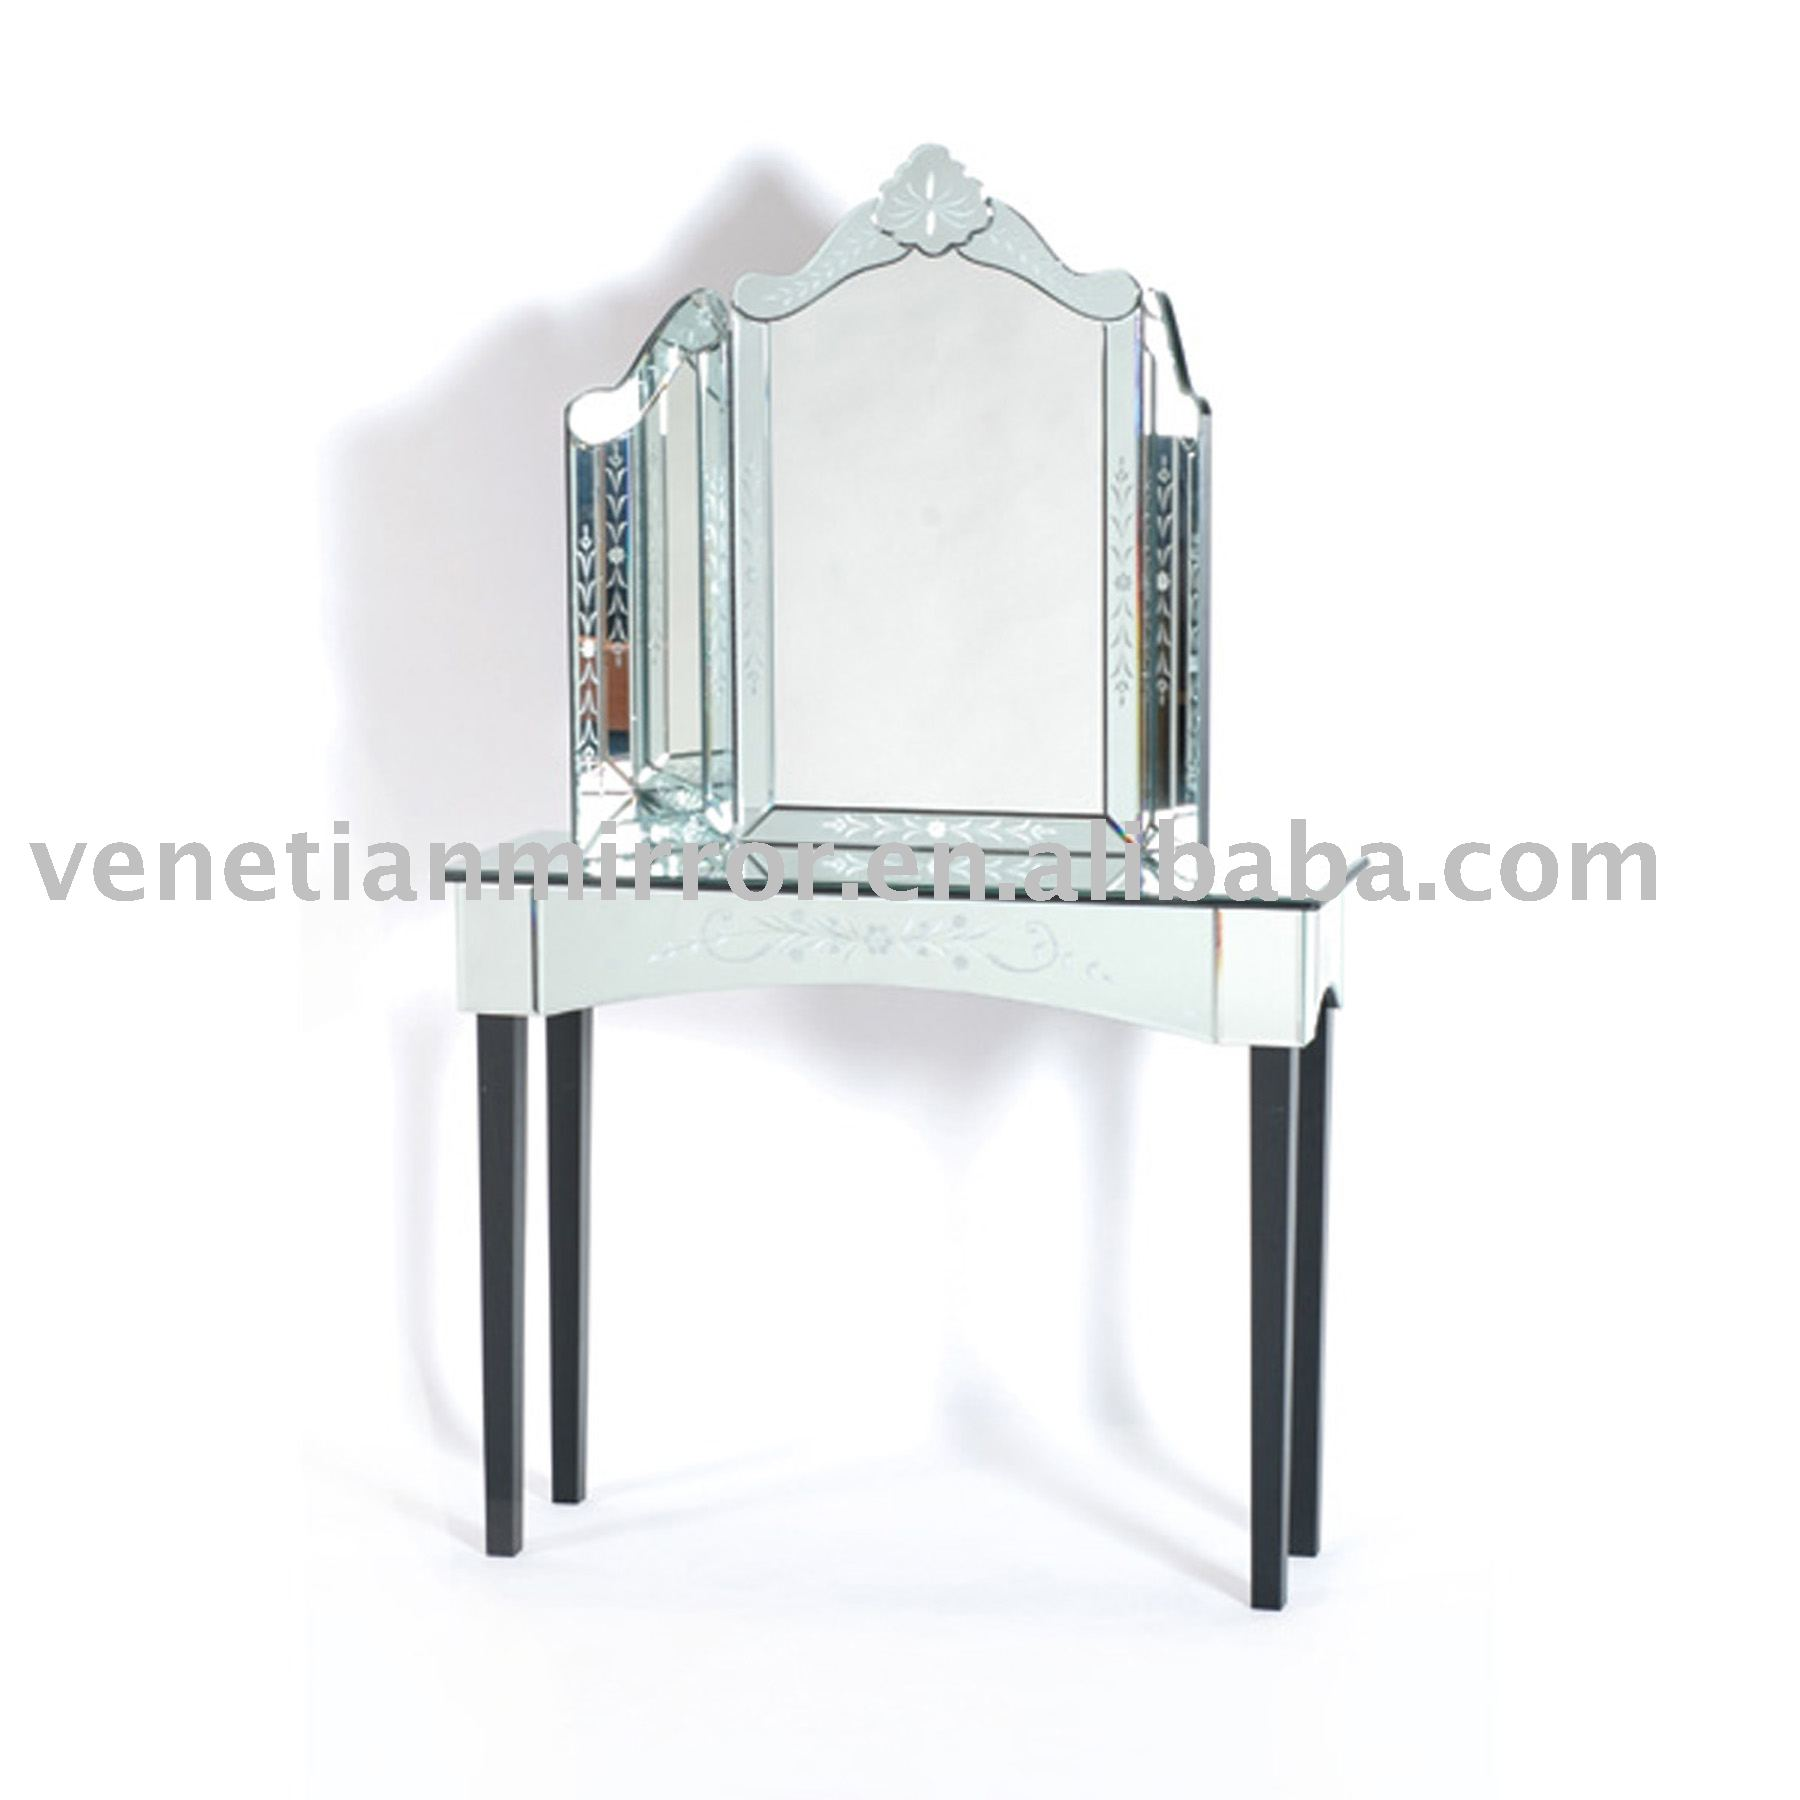 Perfect Where to Buy a Vanity Table with Mirrors 1800 x 1800 · 118 kB · jpeg